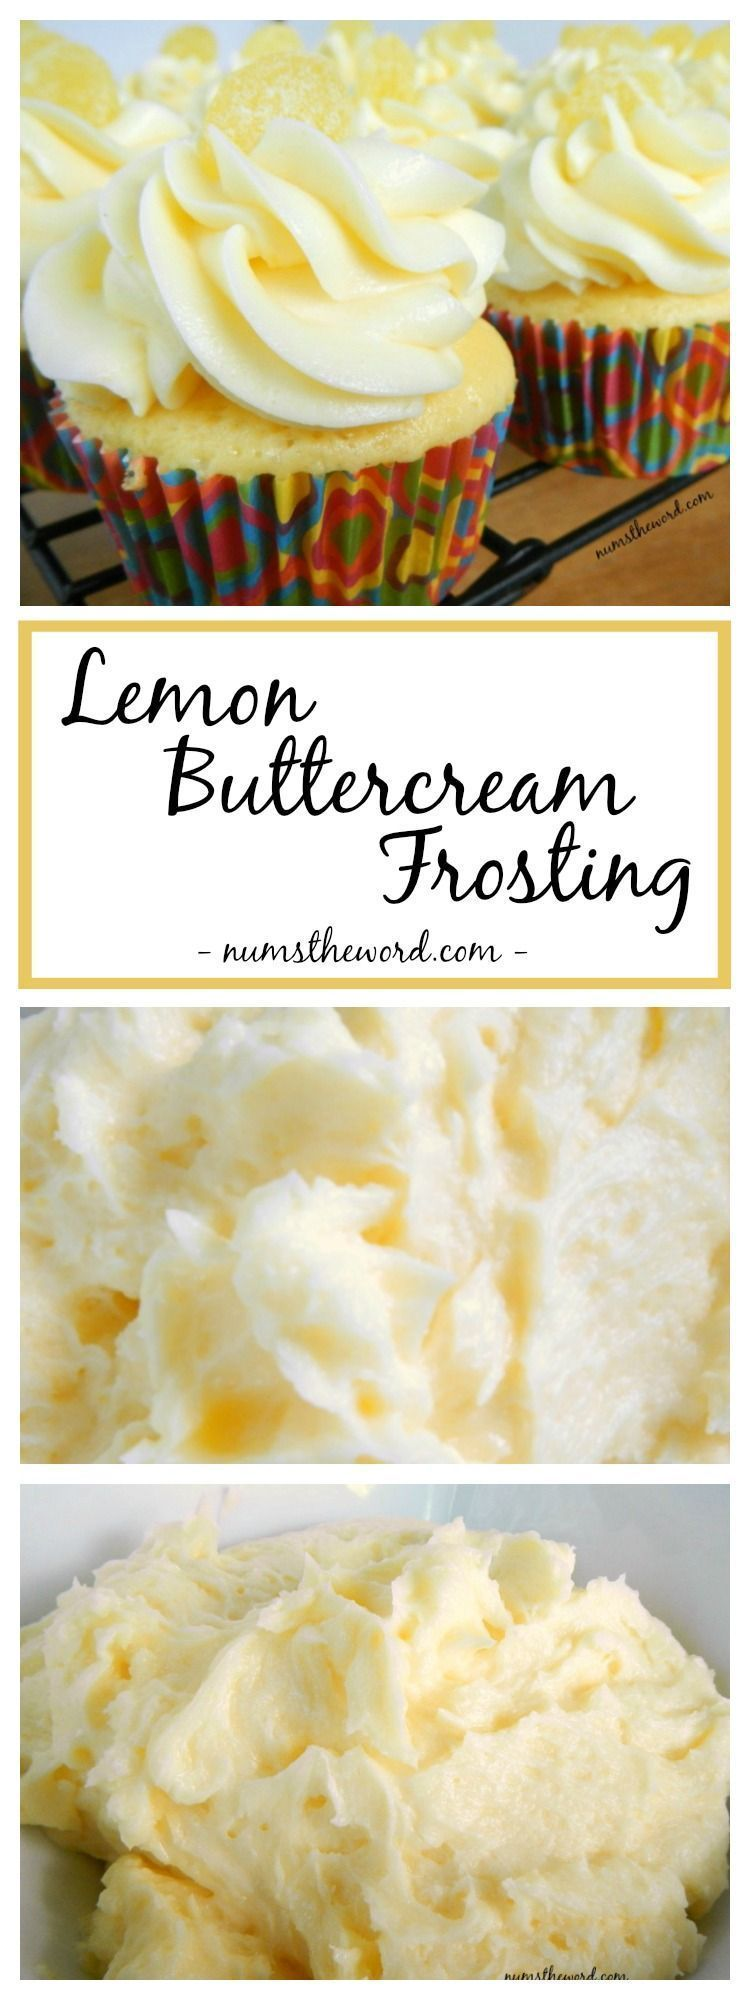 Frosting, is naturally flavored and perfect for any cake or cupcake. Not too sweet, not too strong, just the right amount of lemon in a frosting!